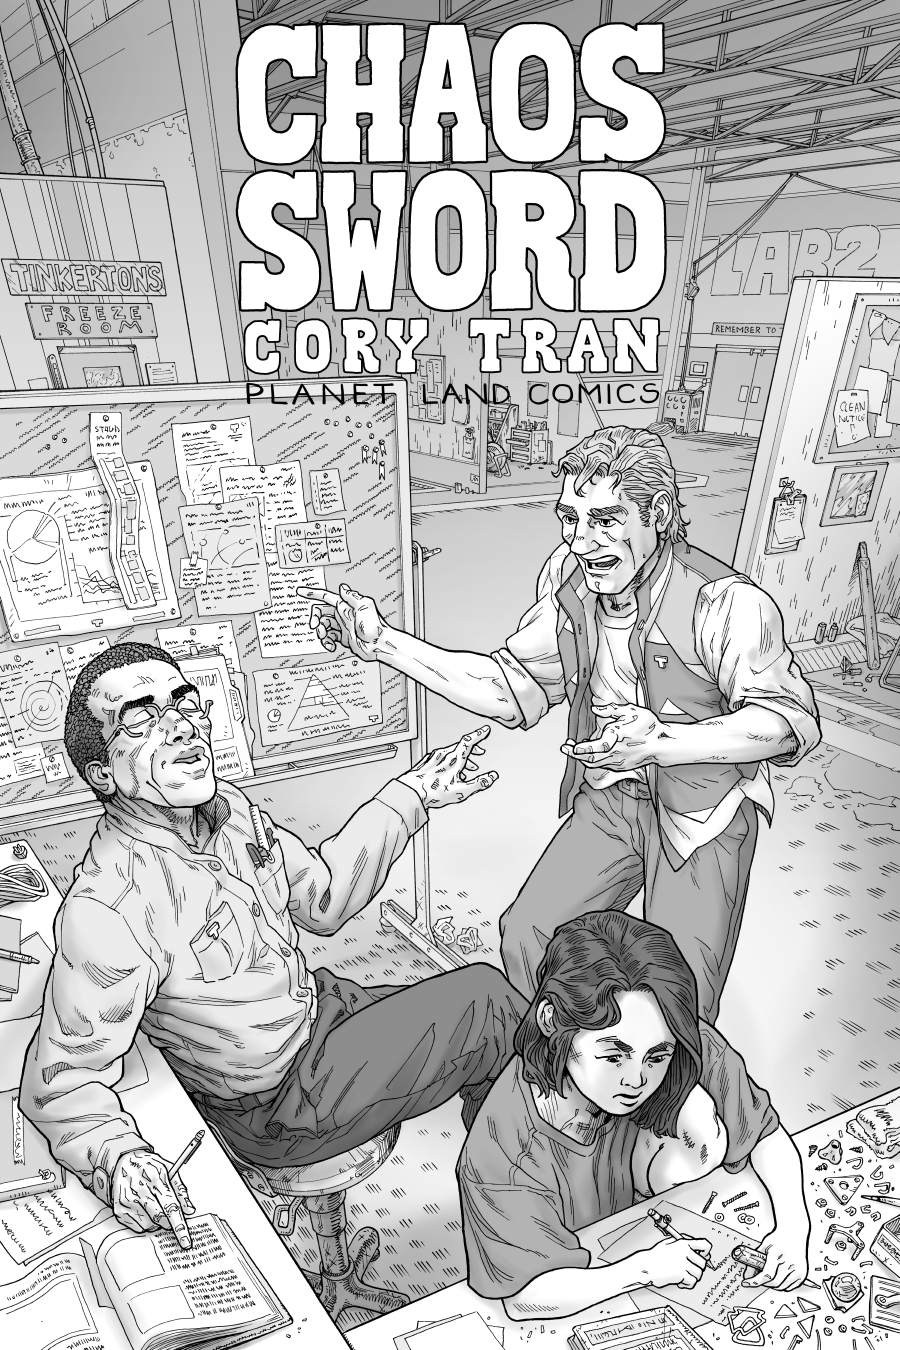 Chaos Sword c2p3 Cover1 by Cory Tran